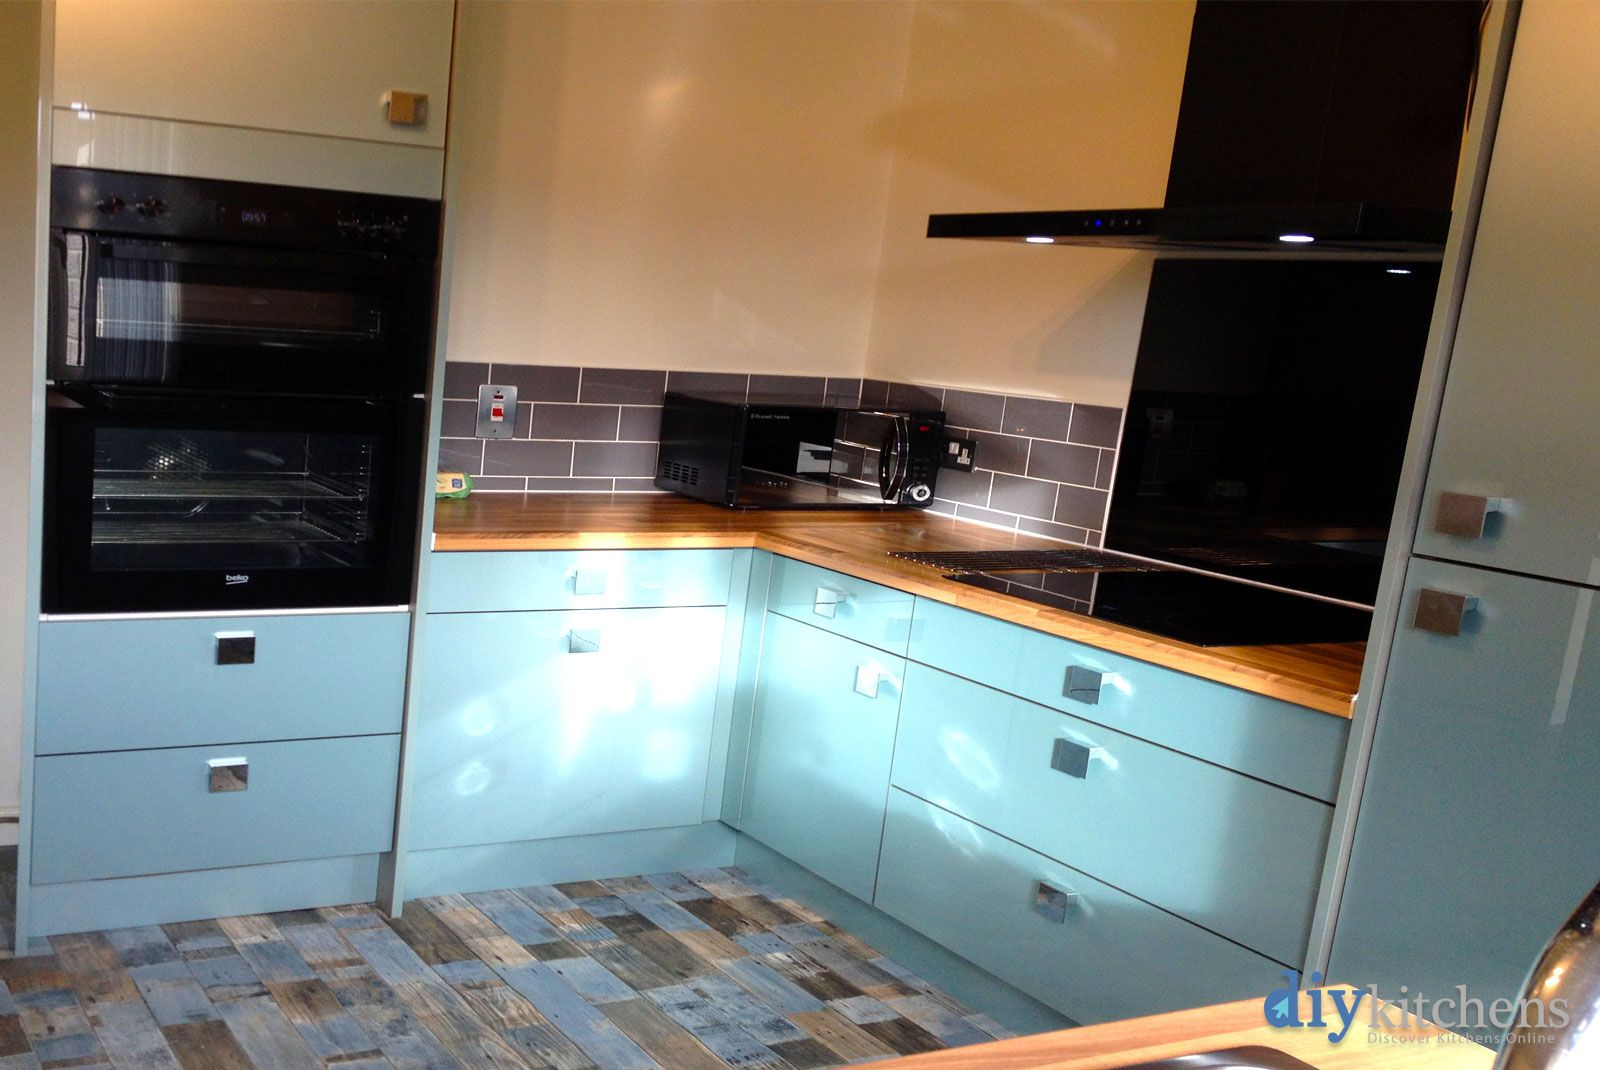 An Innova Altino Petrol Blue High Gloss Kitchen | Real Customer ...